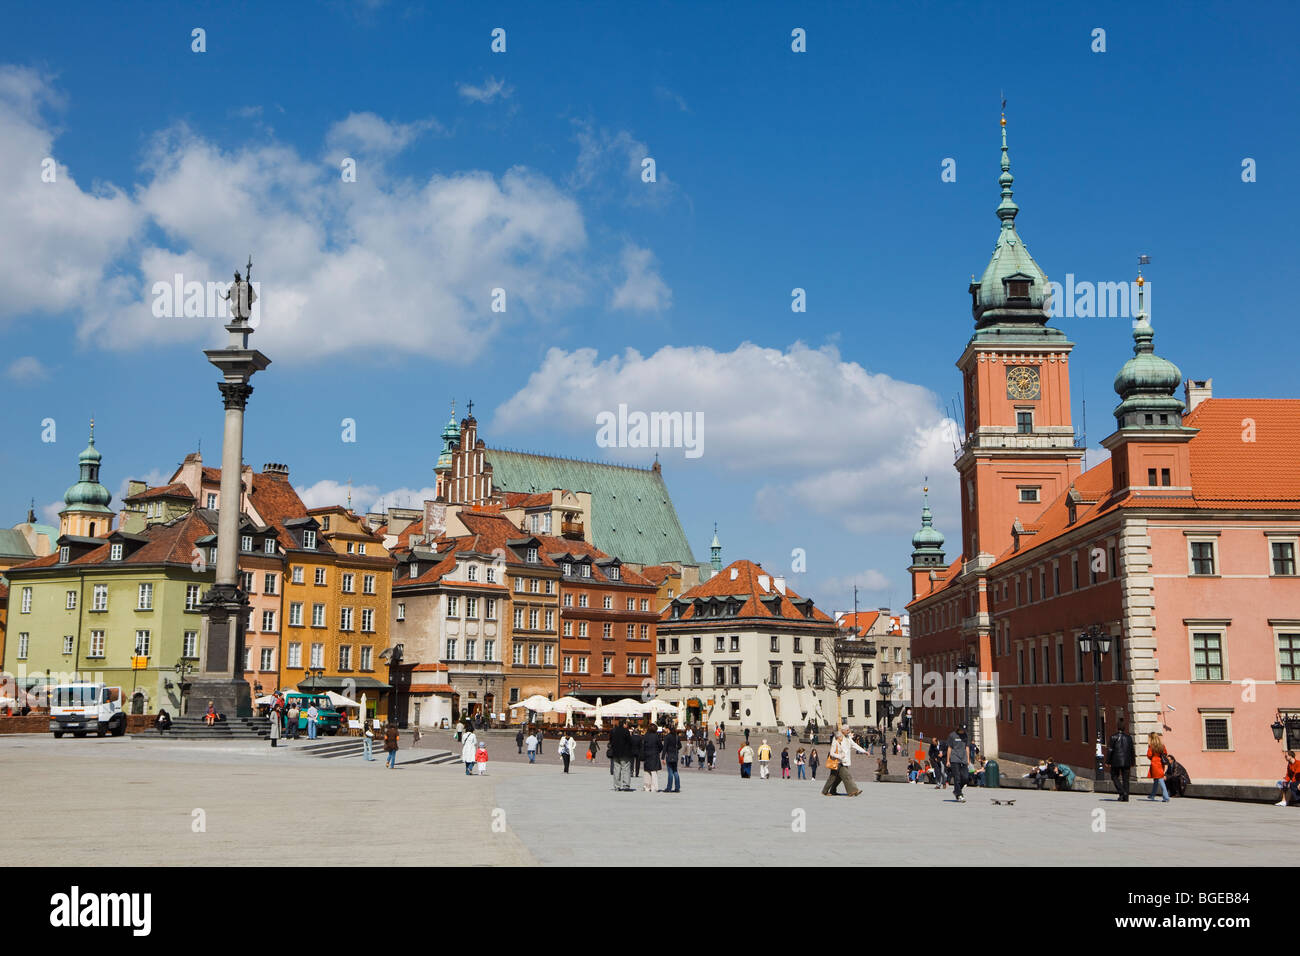 The Old Town in Warsaw, Poland - Stock Image